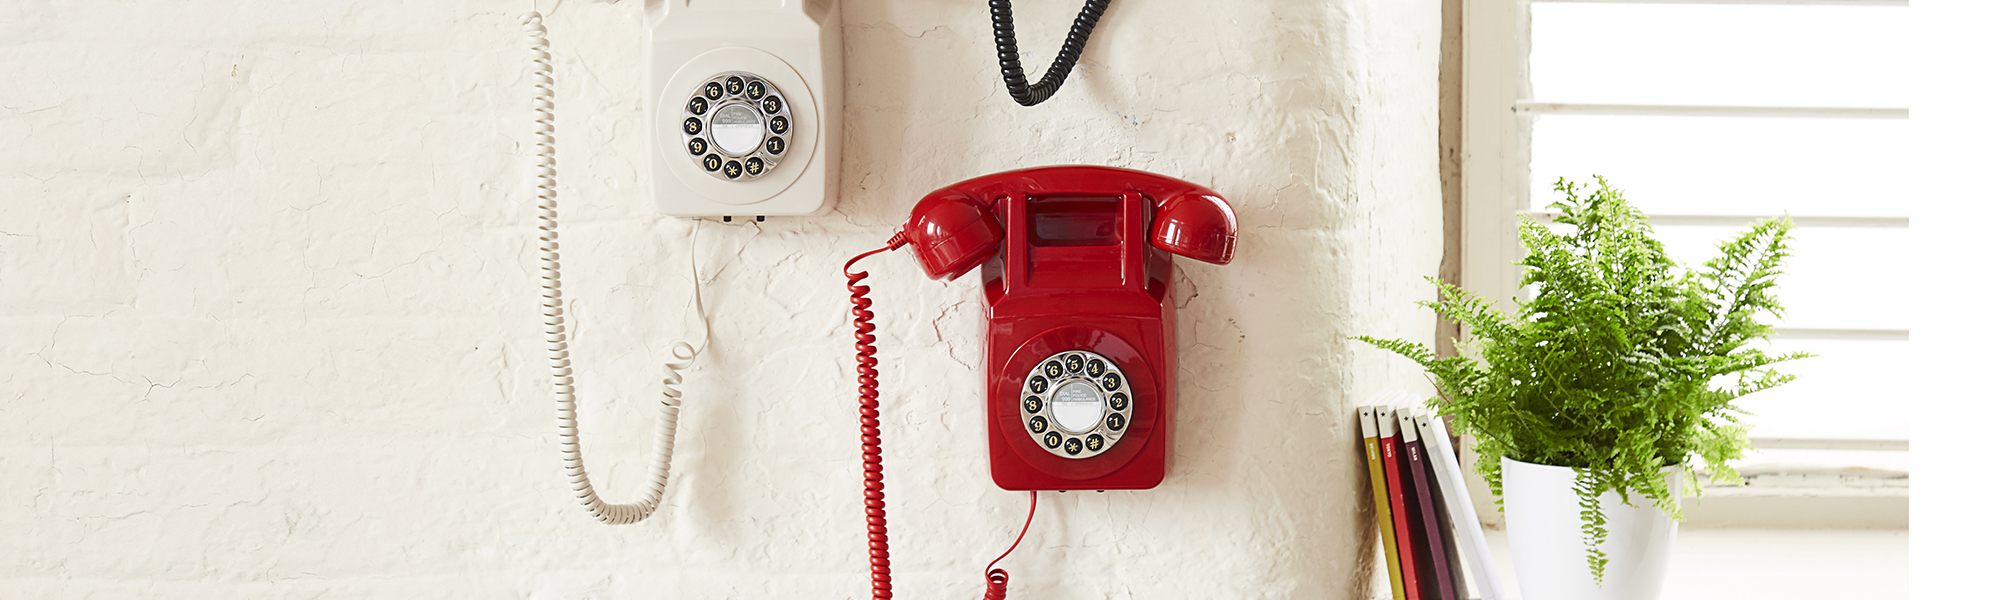 Retro Wall Phones | Old Wall Phones | Old Fashioned Wall Phones